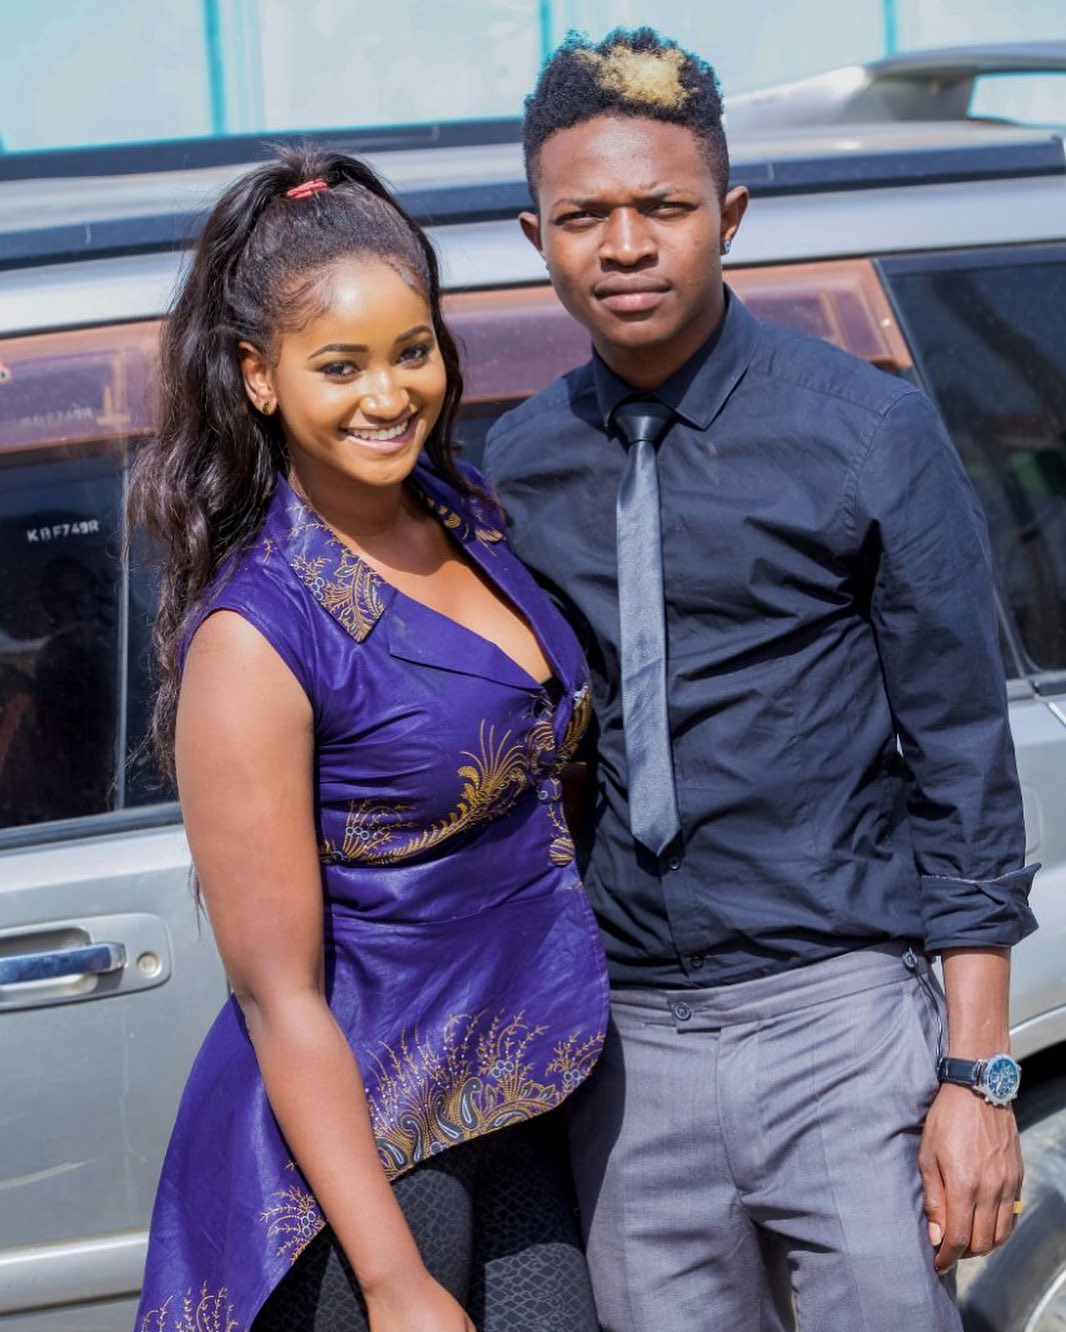 Mr Seed - Proof That Kenyan Gospel Celebrities Have A Thing For Light Skinned Girls